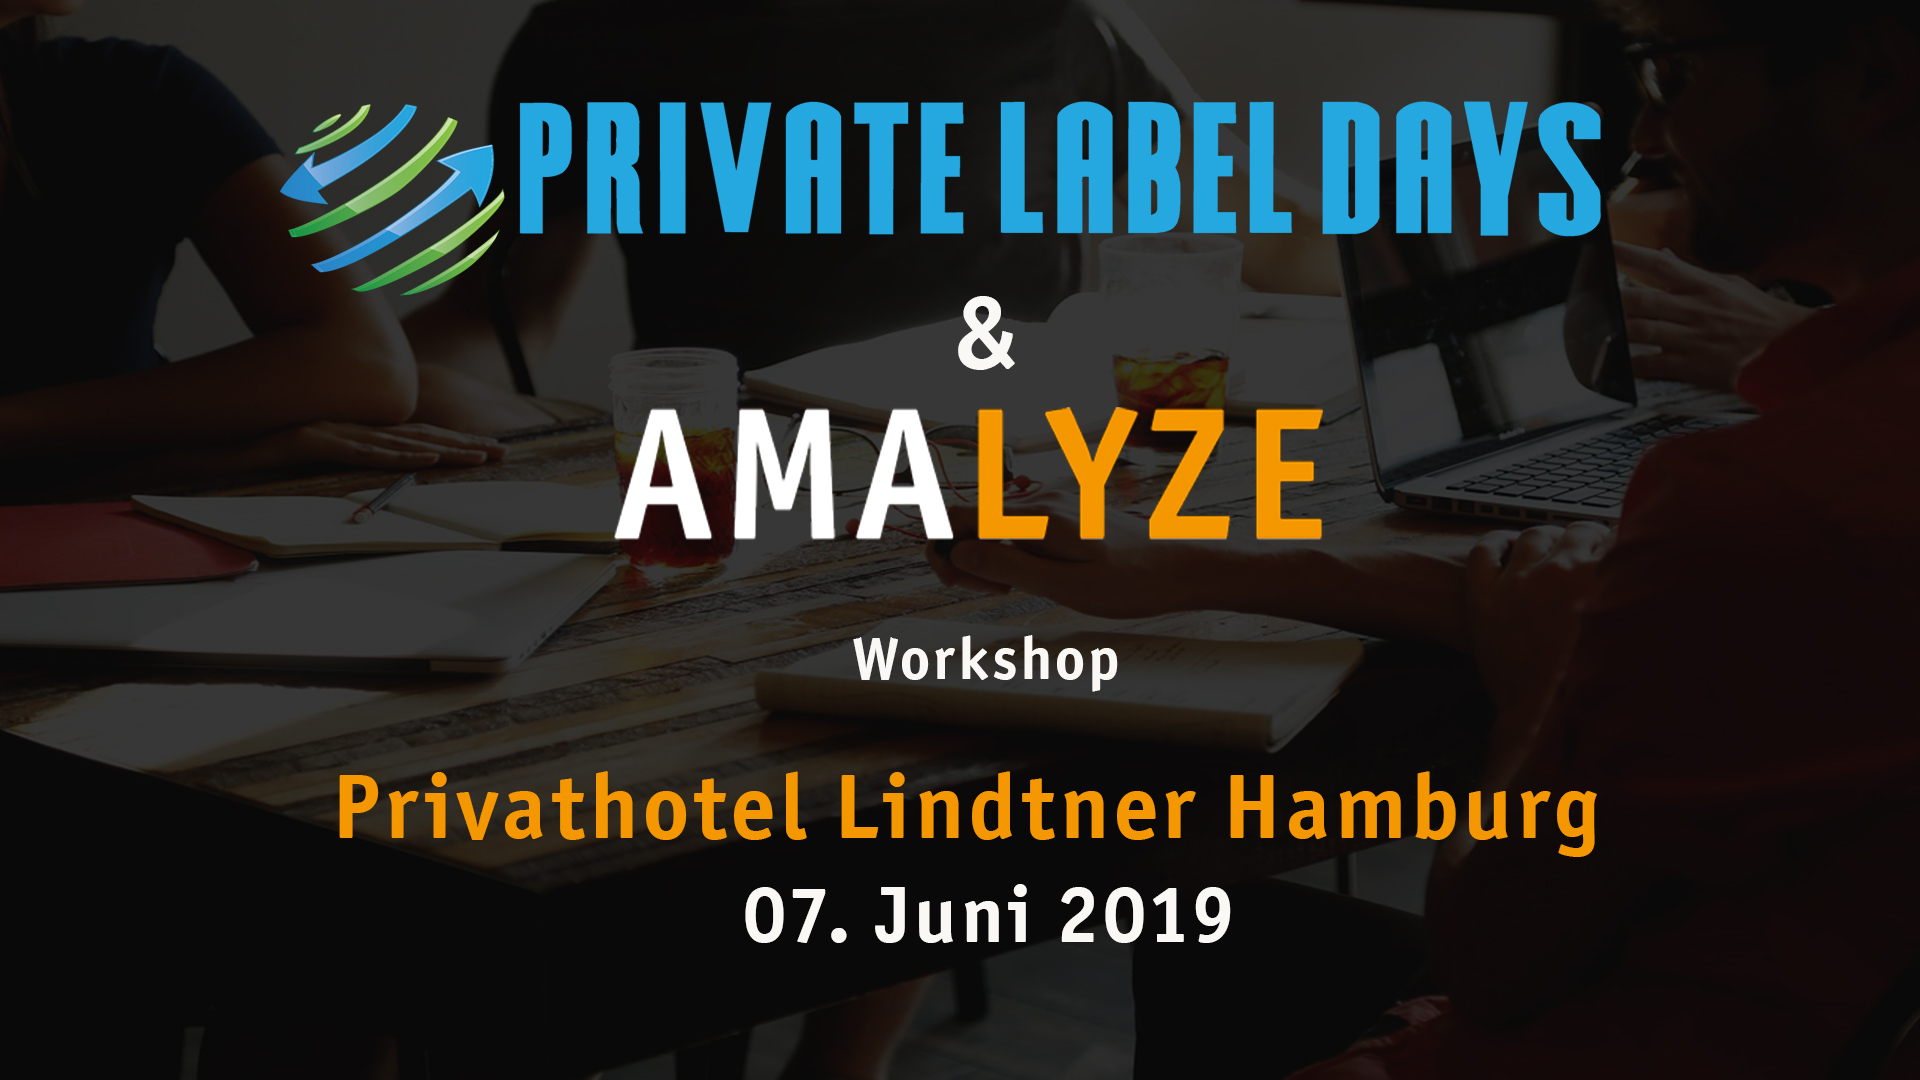 Amazon Workshop - Private Label Days AMALYZE 2019